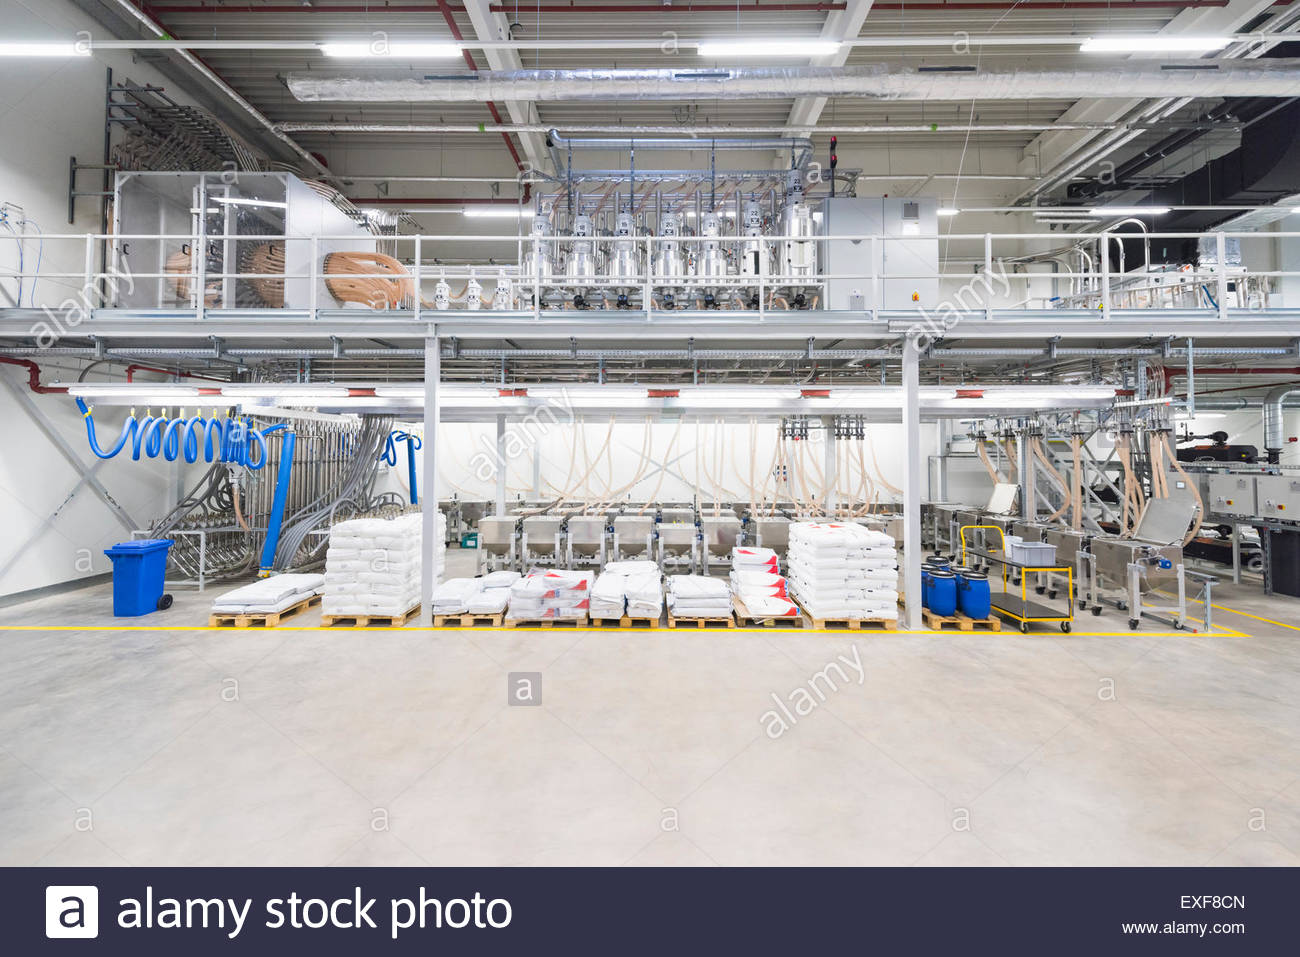 Industrial warehouse with prepared order on pallets - Stock Image